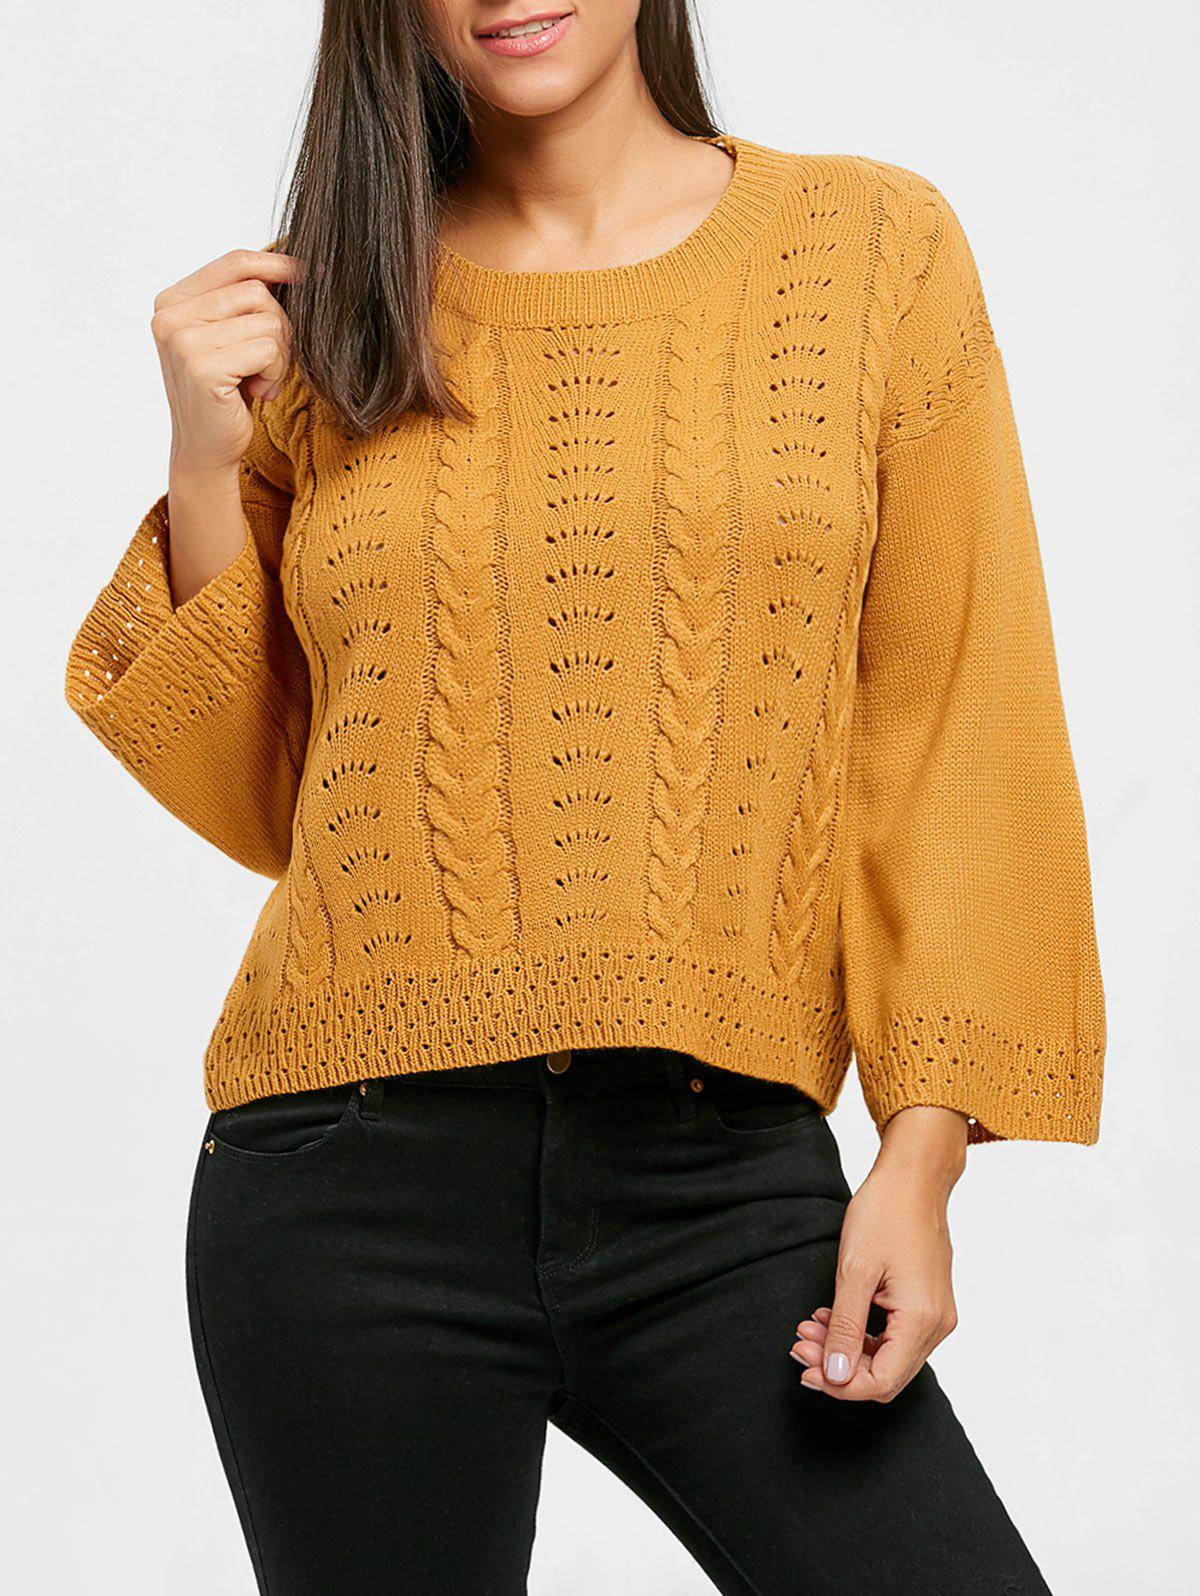 Crew Neck Hollow Out Cable Knit Sweater 232954802